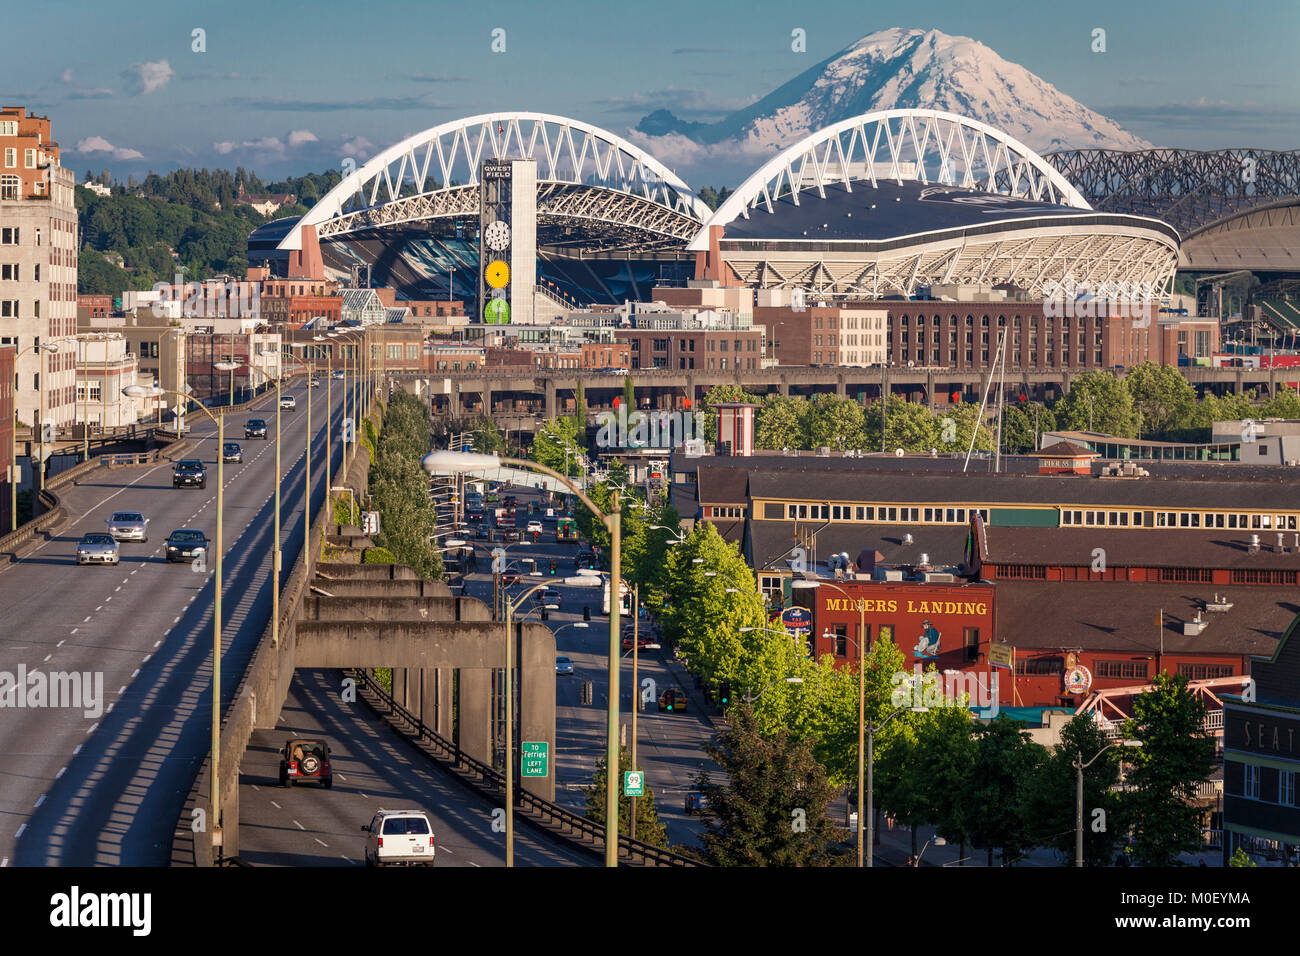 Waterfront, 99 viaduct, stadiums, Mt Rainier, Seattle, Washington, USA - Stock Image